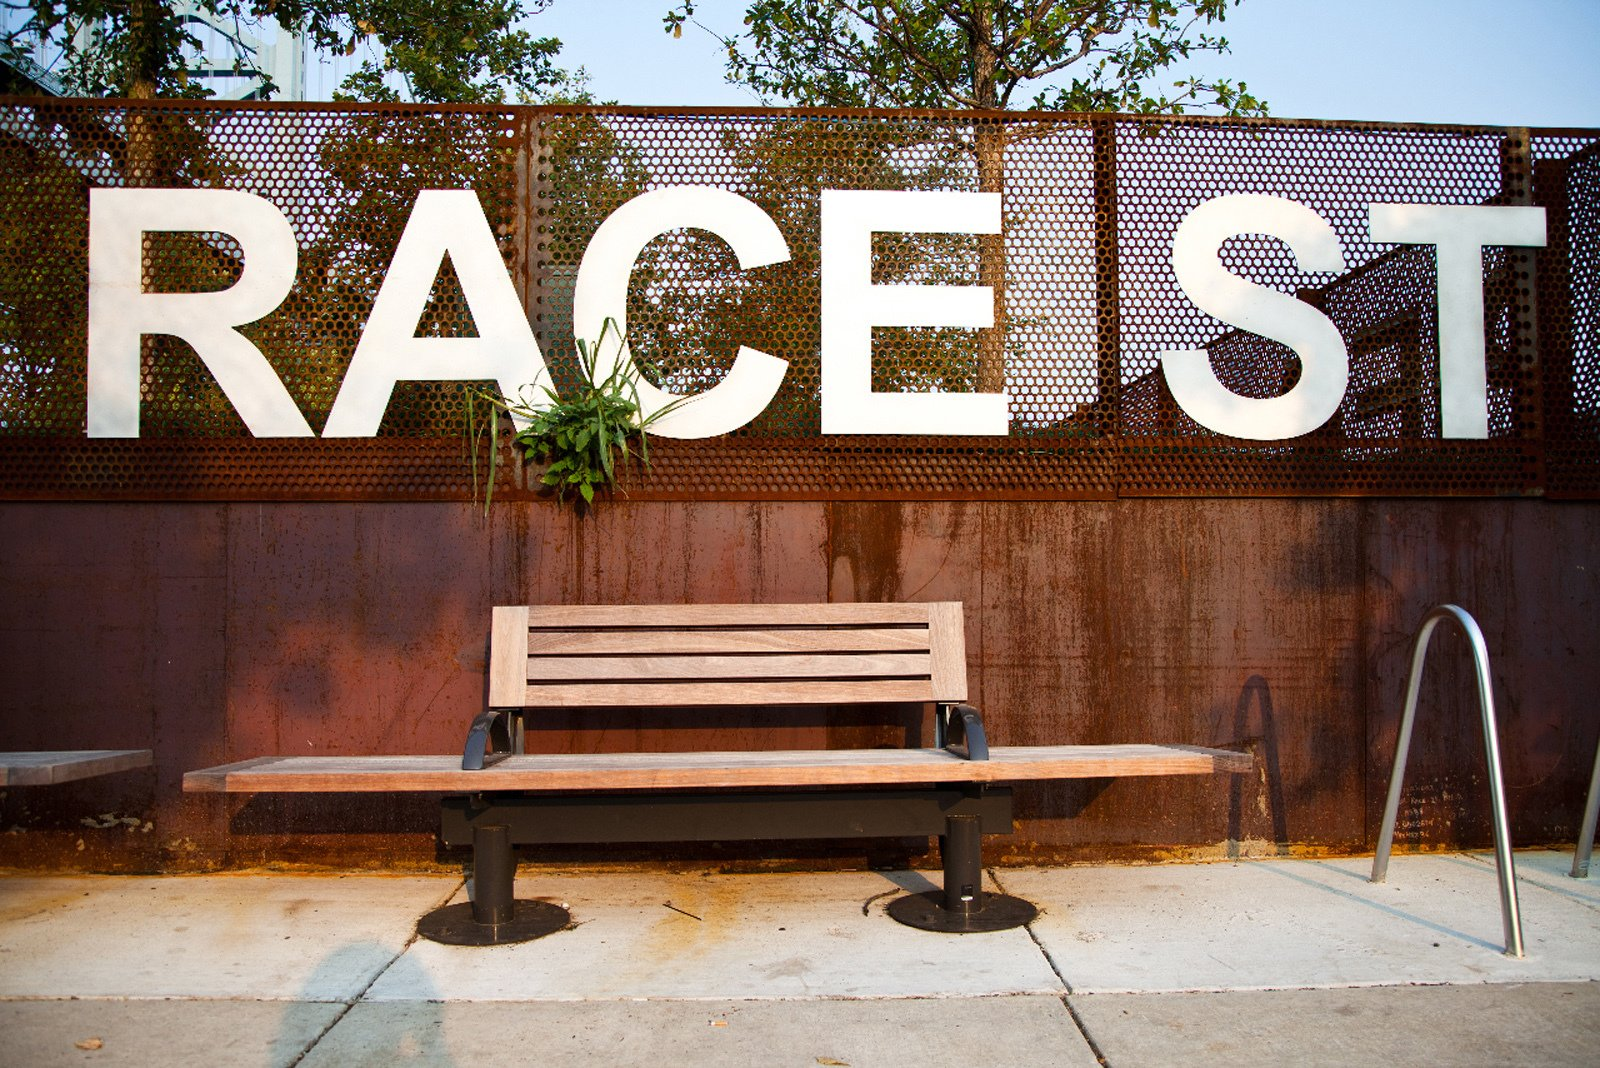 Nu Line Bench by Landscape Forms  Race Street Pier in Philadelphia utilizes off-the-shelf benches and furnishings from Landscape Forms' Nu Line to give visitors a way to experience the views on the newly created waterfront park. The wide benches encourage lounging and the wooden viewing stands nearby offer the chance to lean back and relax while looking out towards the water. There's a little something for everyone, it seems.  Street Furniture Your City Wishes it Had by Tim Newcomb